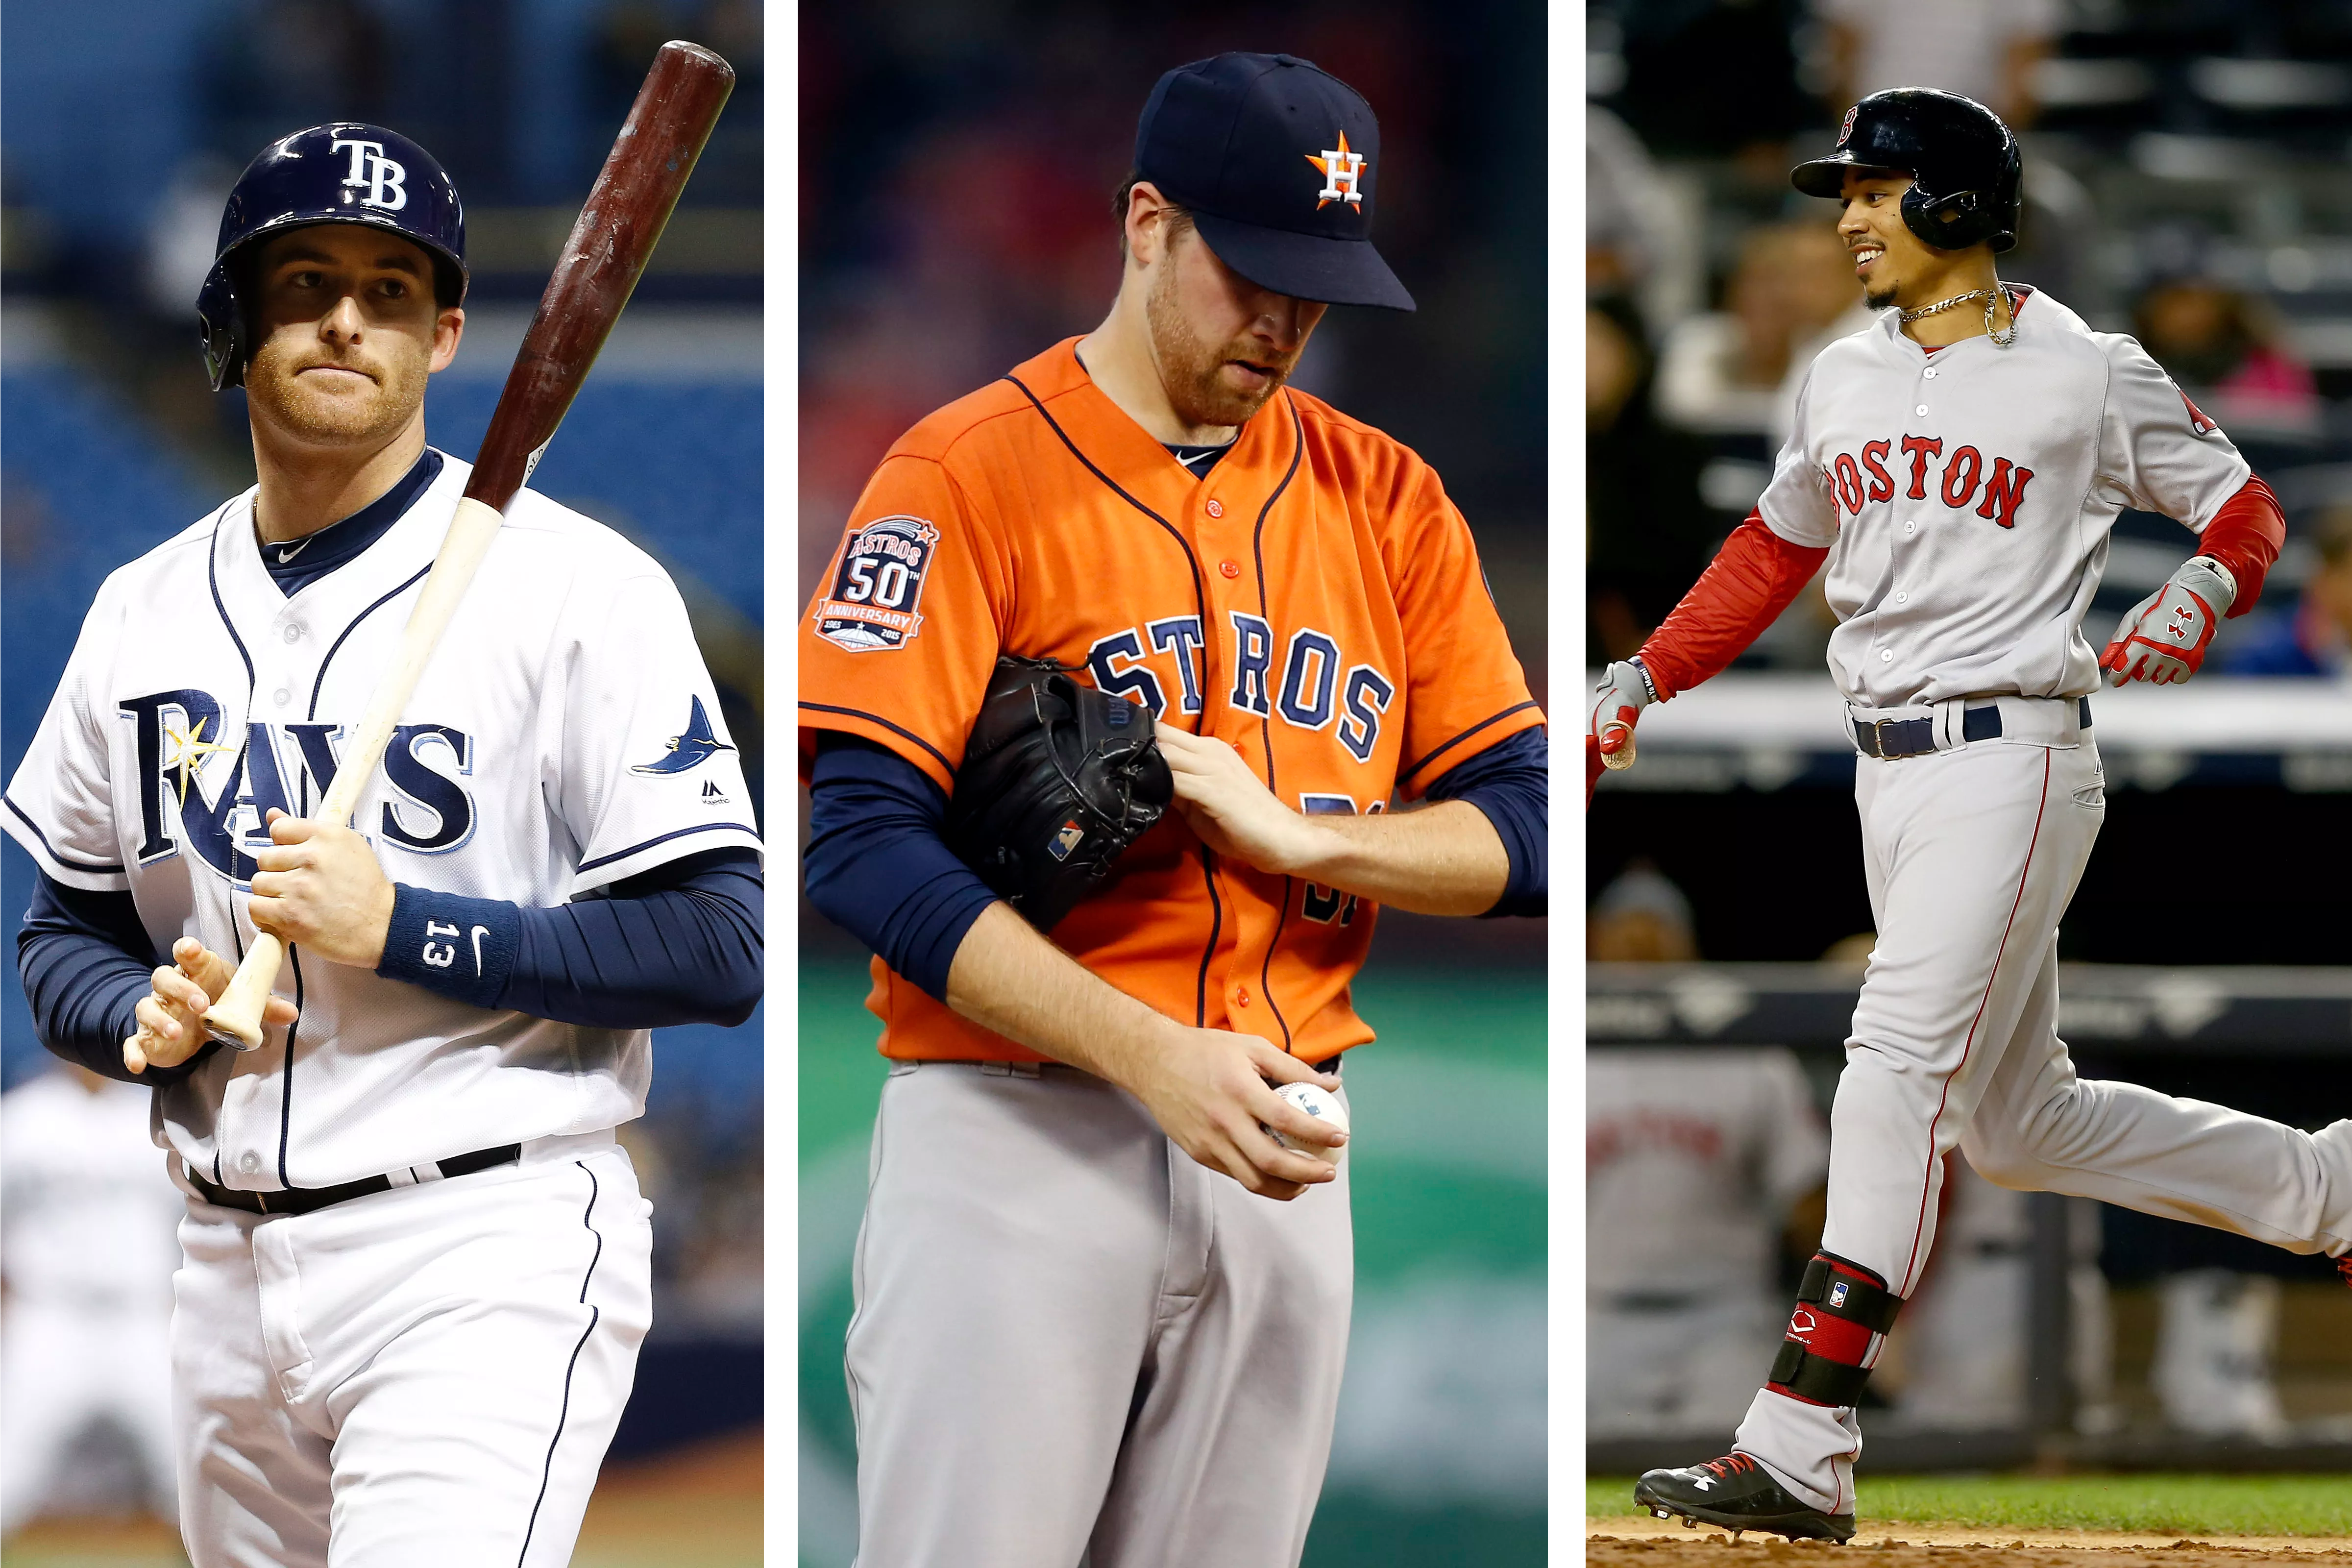 Miller and McHugh have been pretty unlucky this year. Betts? Not so much.